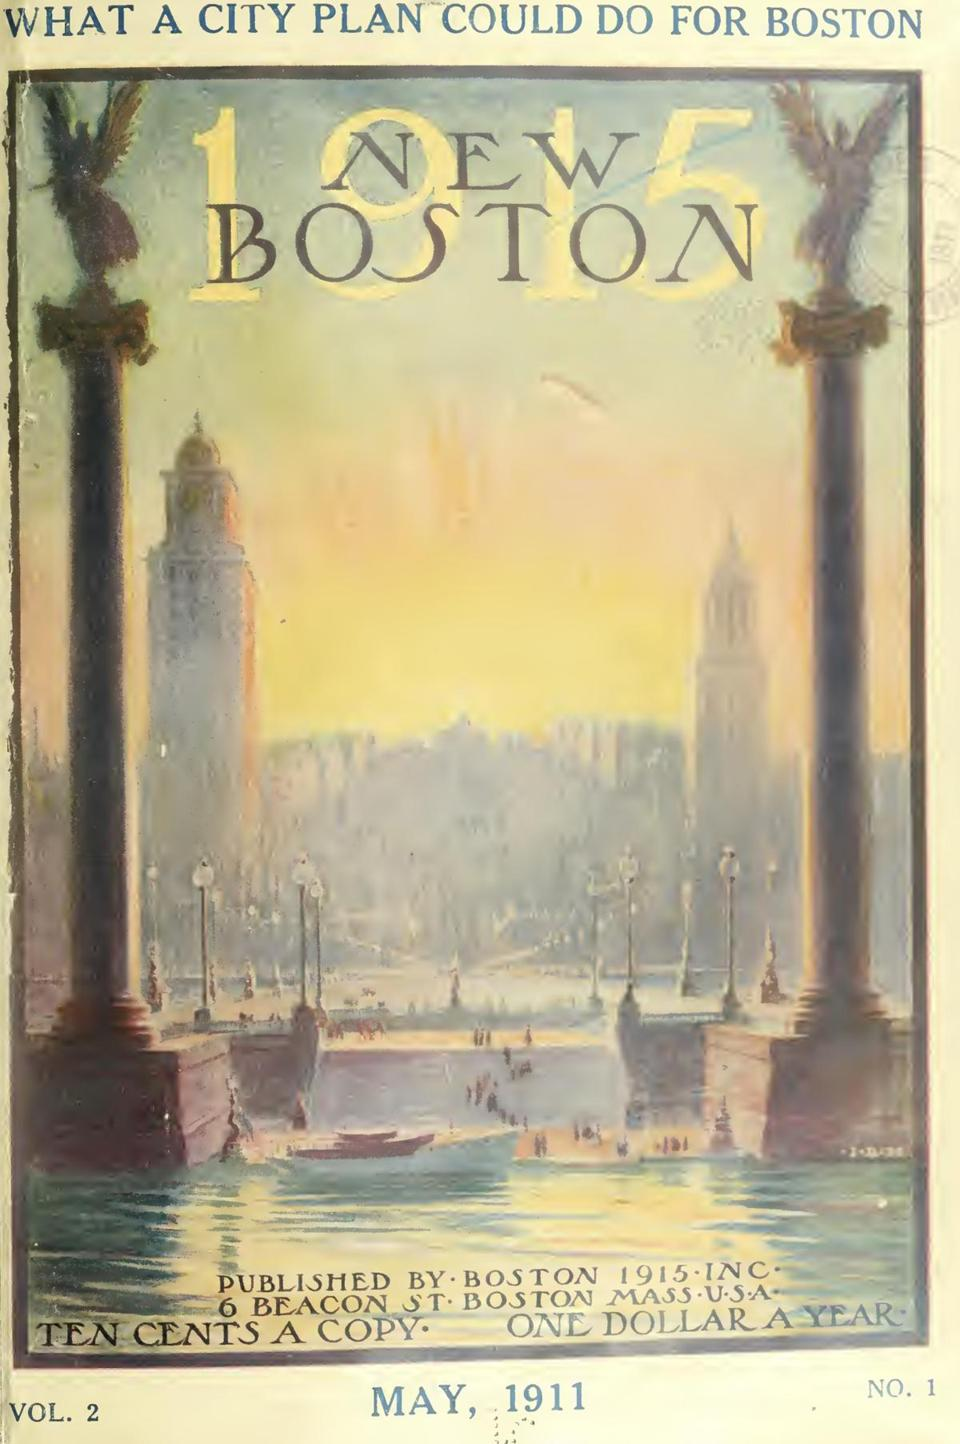 The campaign, called Boston-1915, is little-remembered today, but it was a movement with great sweep and ambition. They launched publicity campaigns and publications, including a reform-minded magazine called New Boston, and began an assault on urban problems from almost every possible angle.